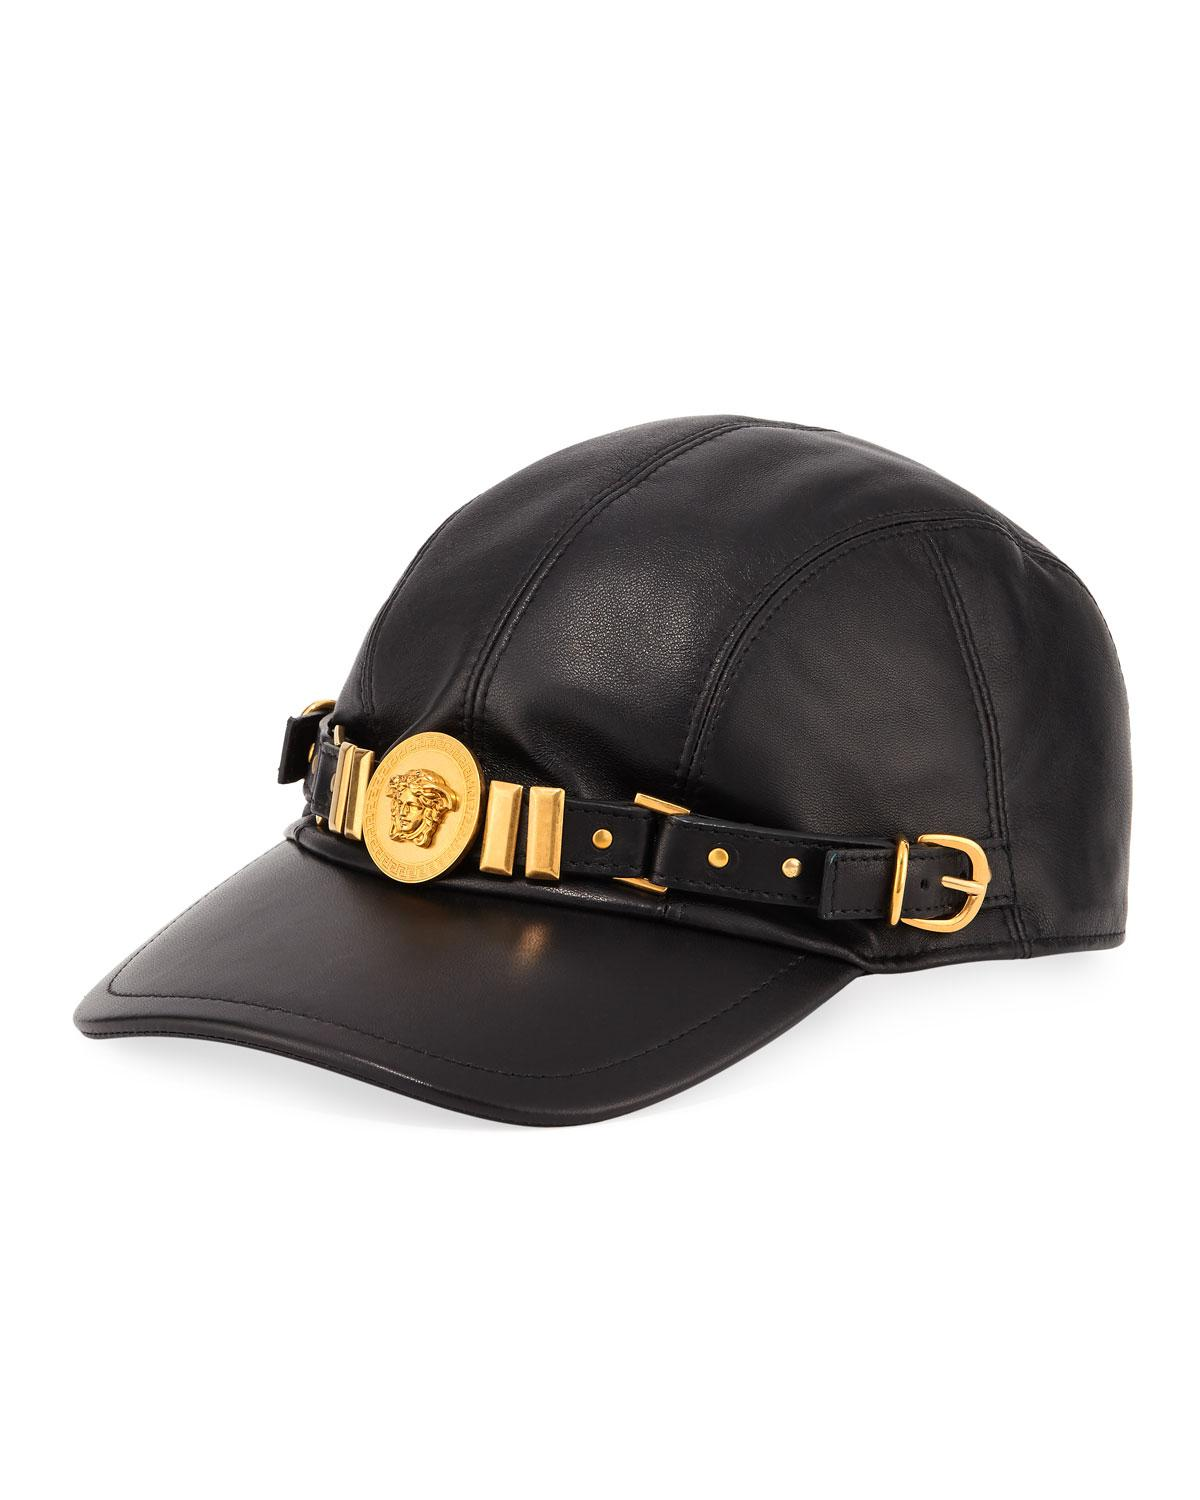 22db0099056 Lyst - Versace Leather Baseball Cap With Medusa Medalion in Black ...